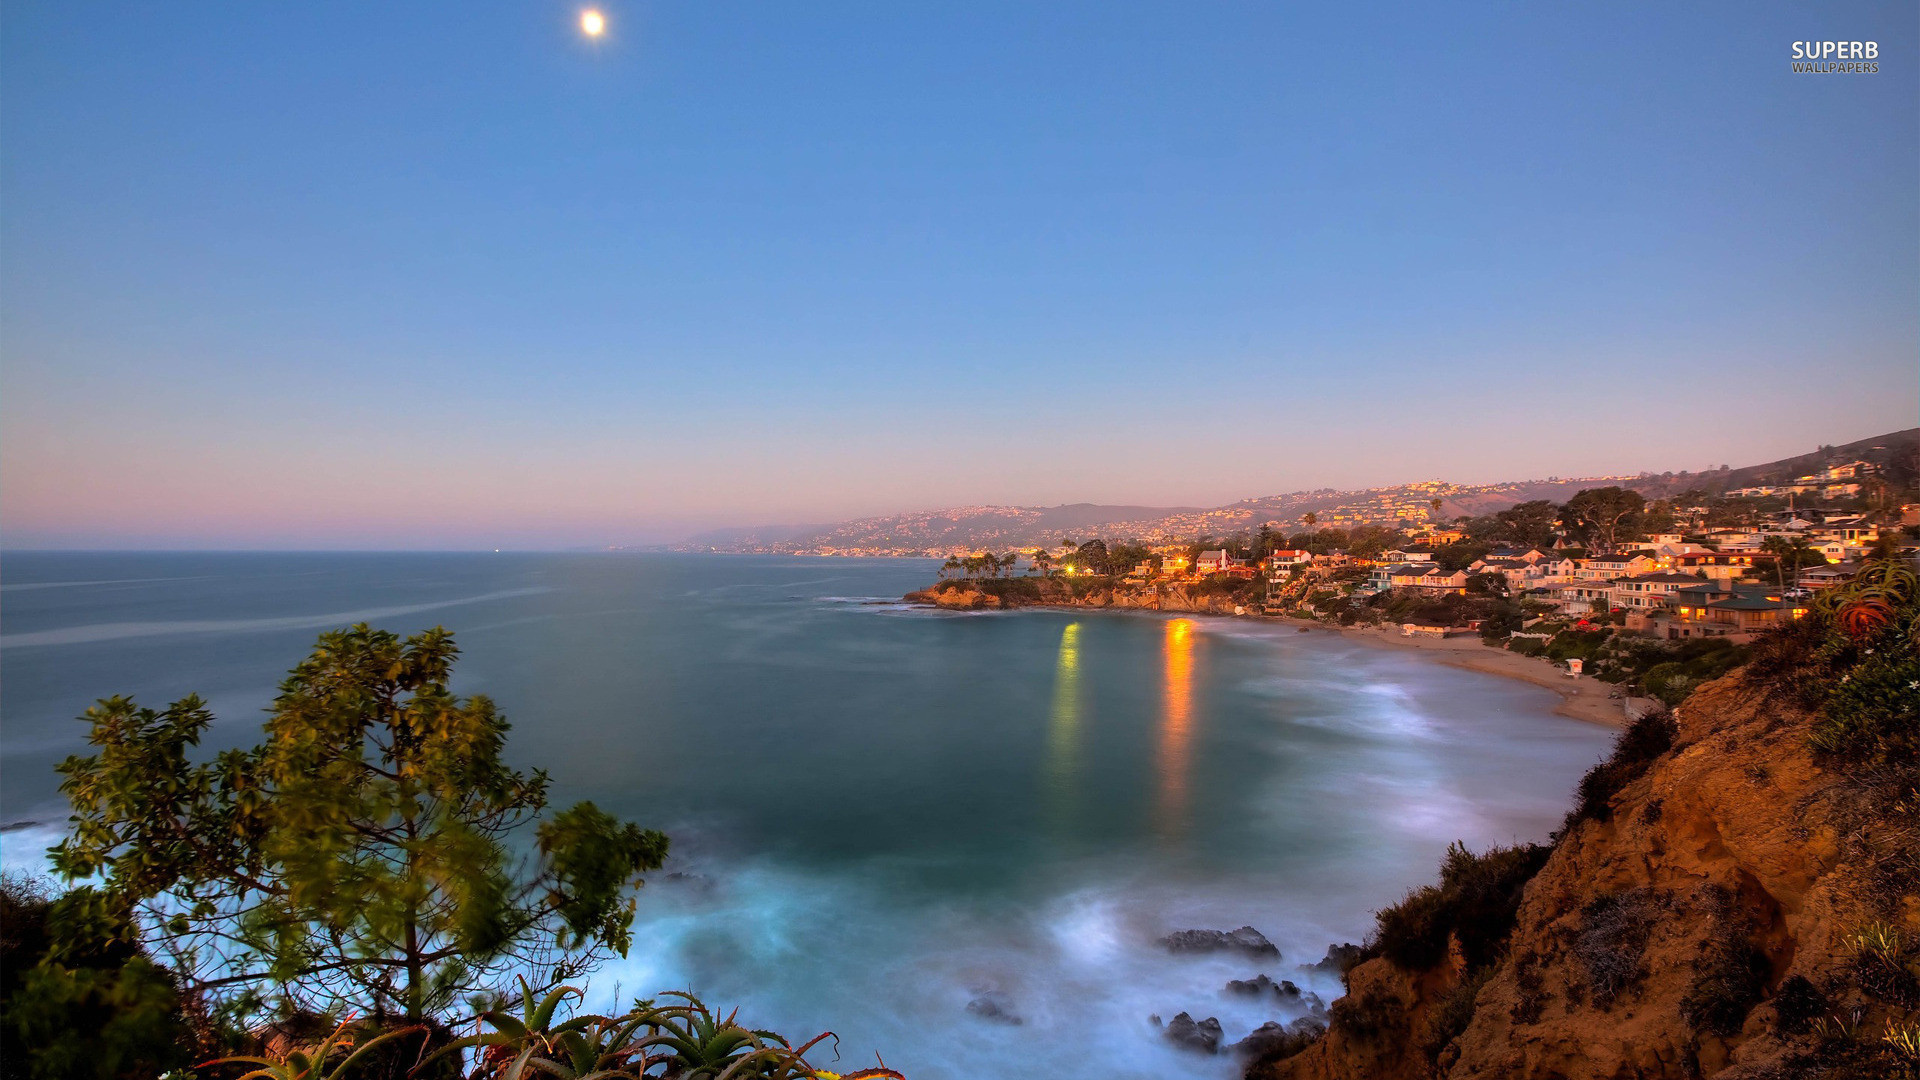 1920x1080 Laguna Beach Wallpaper | Beach Wallpapers